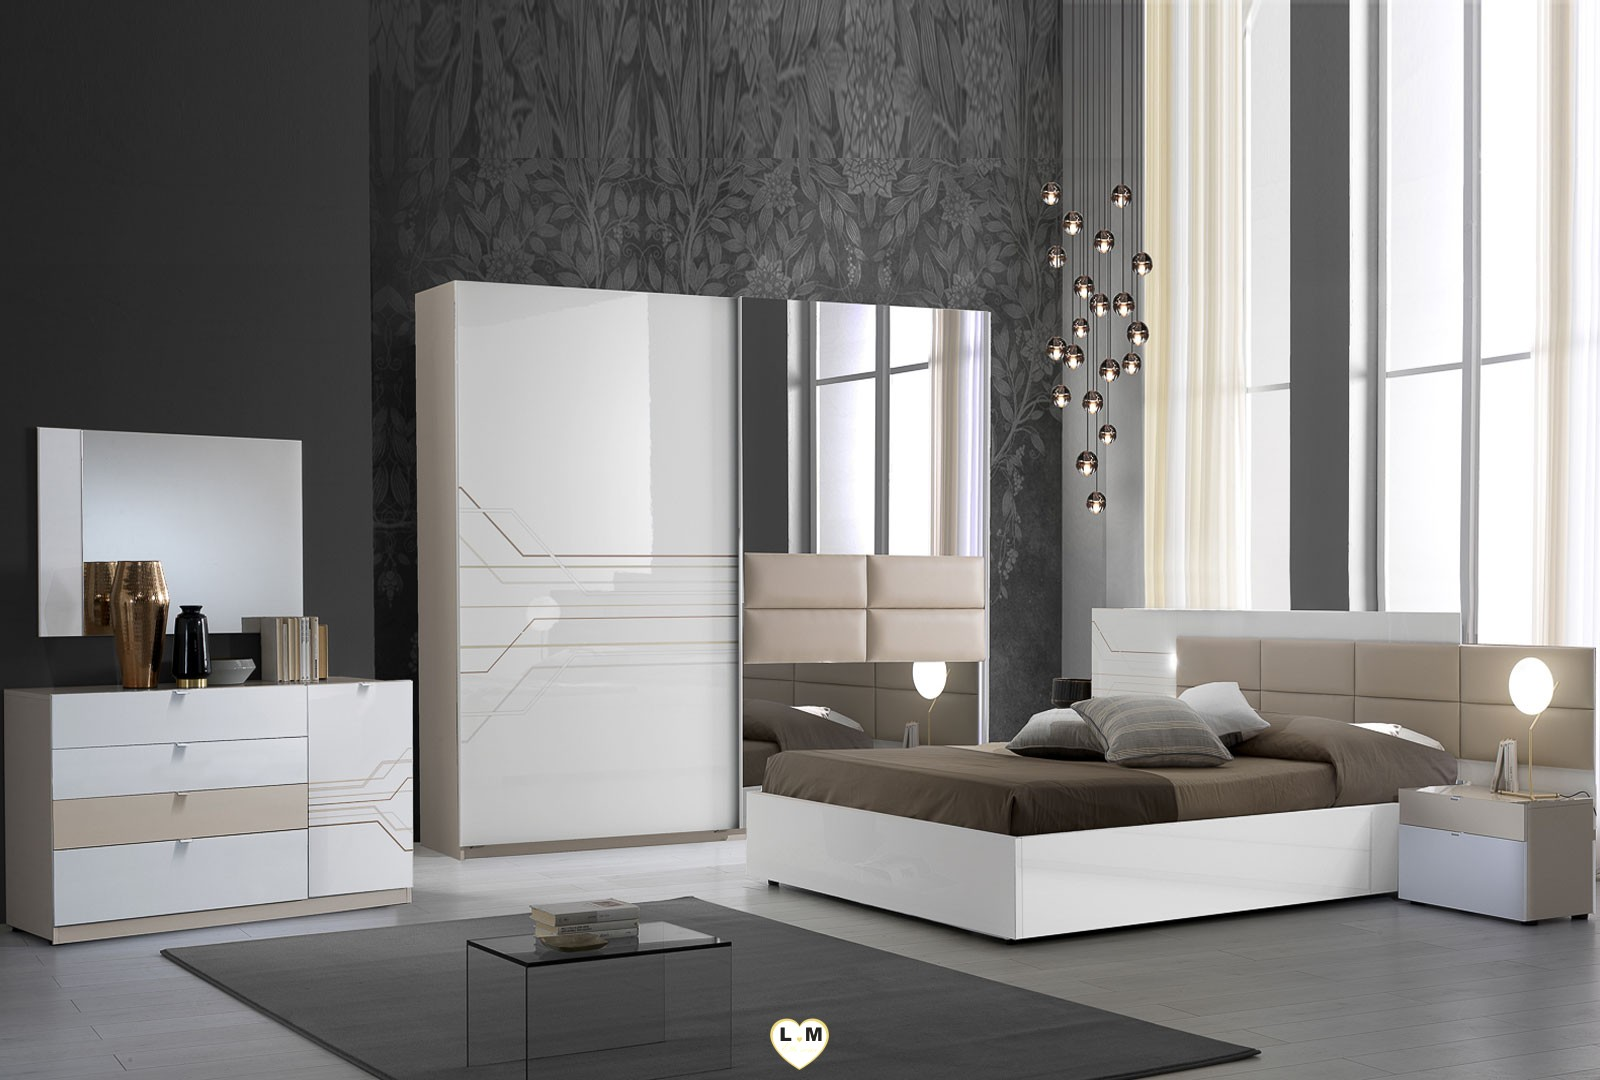 thomas laque blanc et beige ensemble chambre a coucher lignemeuble com. Black Bedroom Furniture Sets. Home Design Ideas